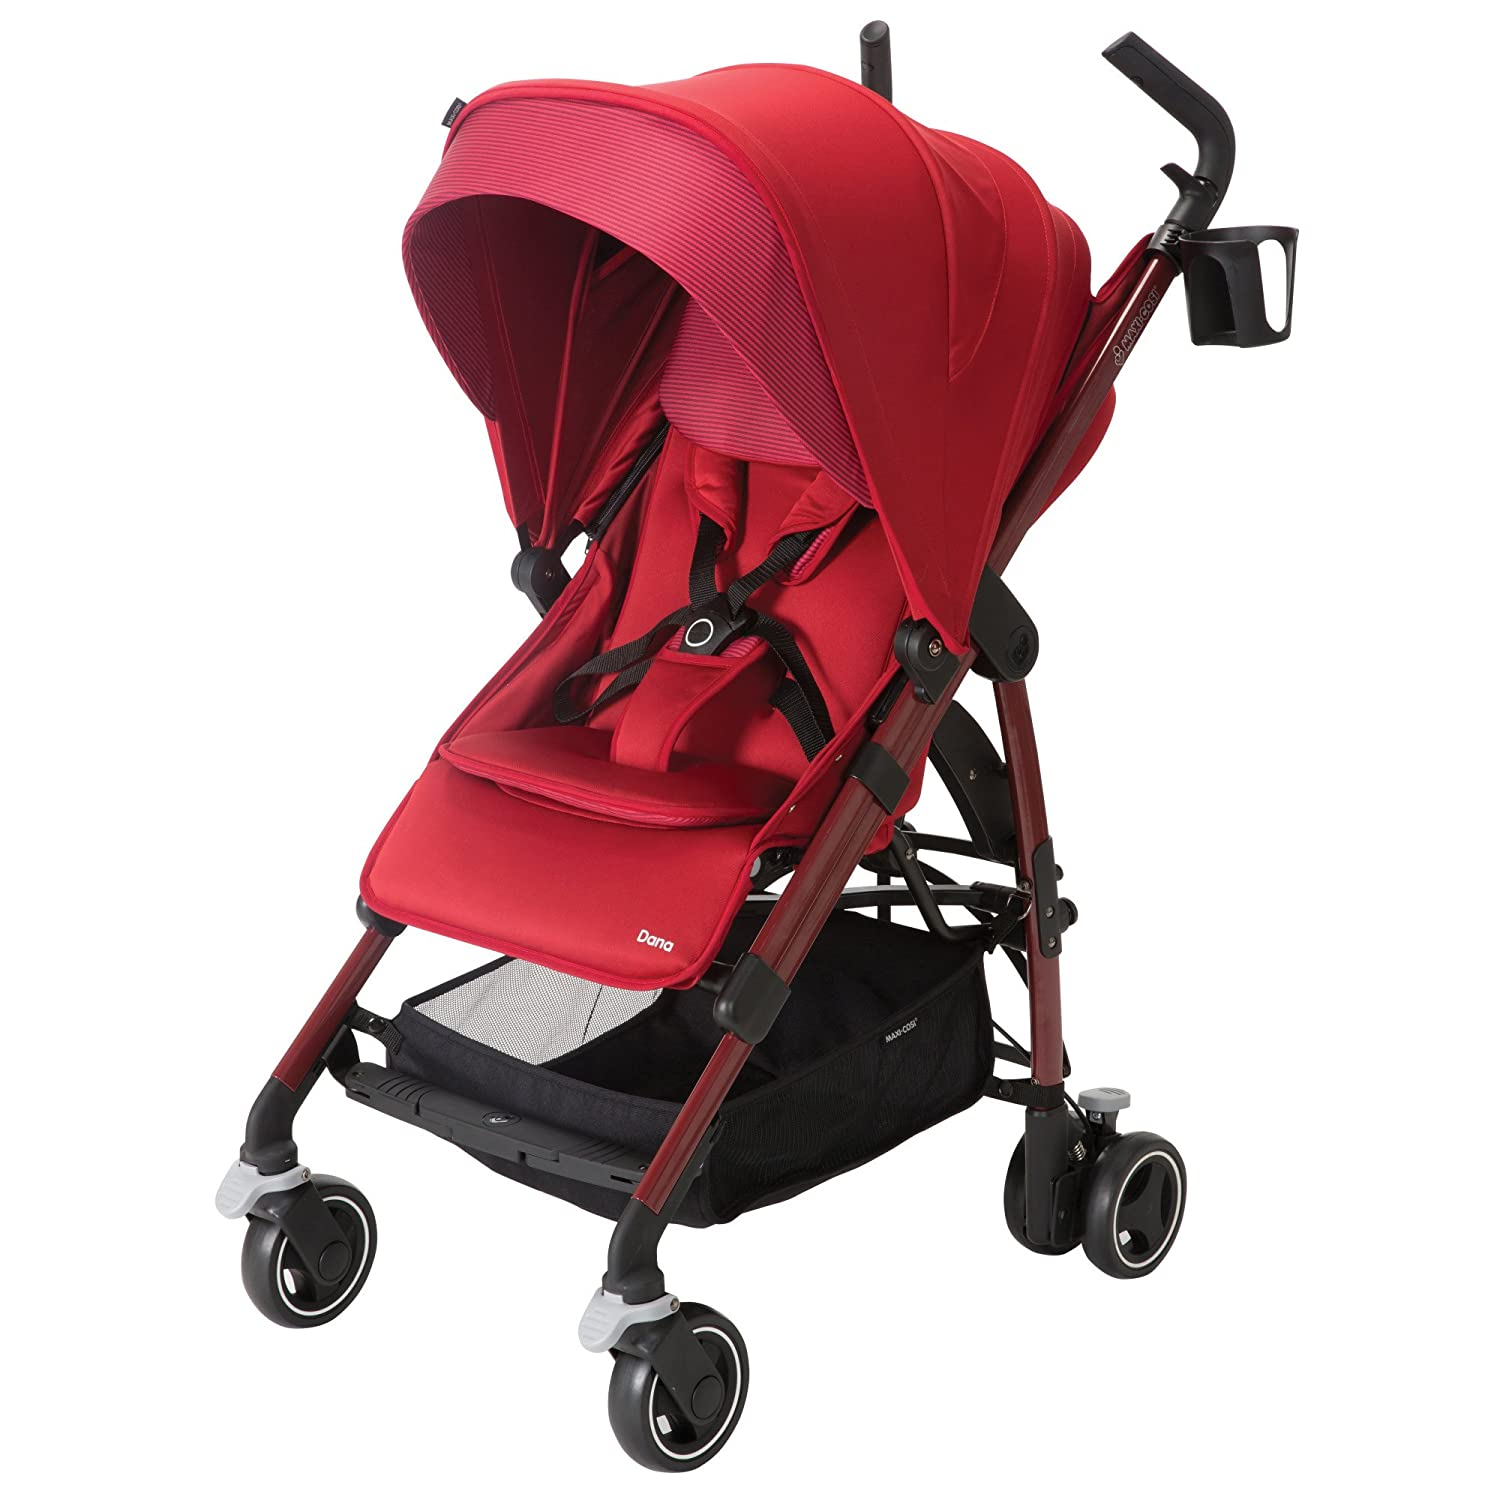 Maxi-Cosi Dana Stroller, Red Rumor by Maxi-Cosi: Amazon.es: Bebé